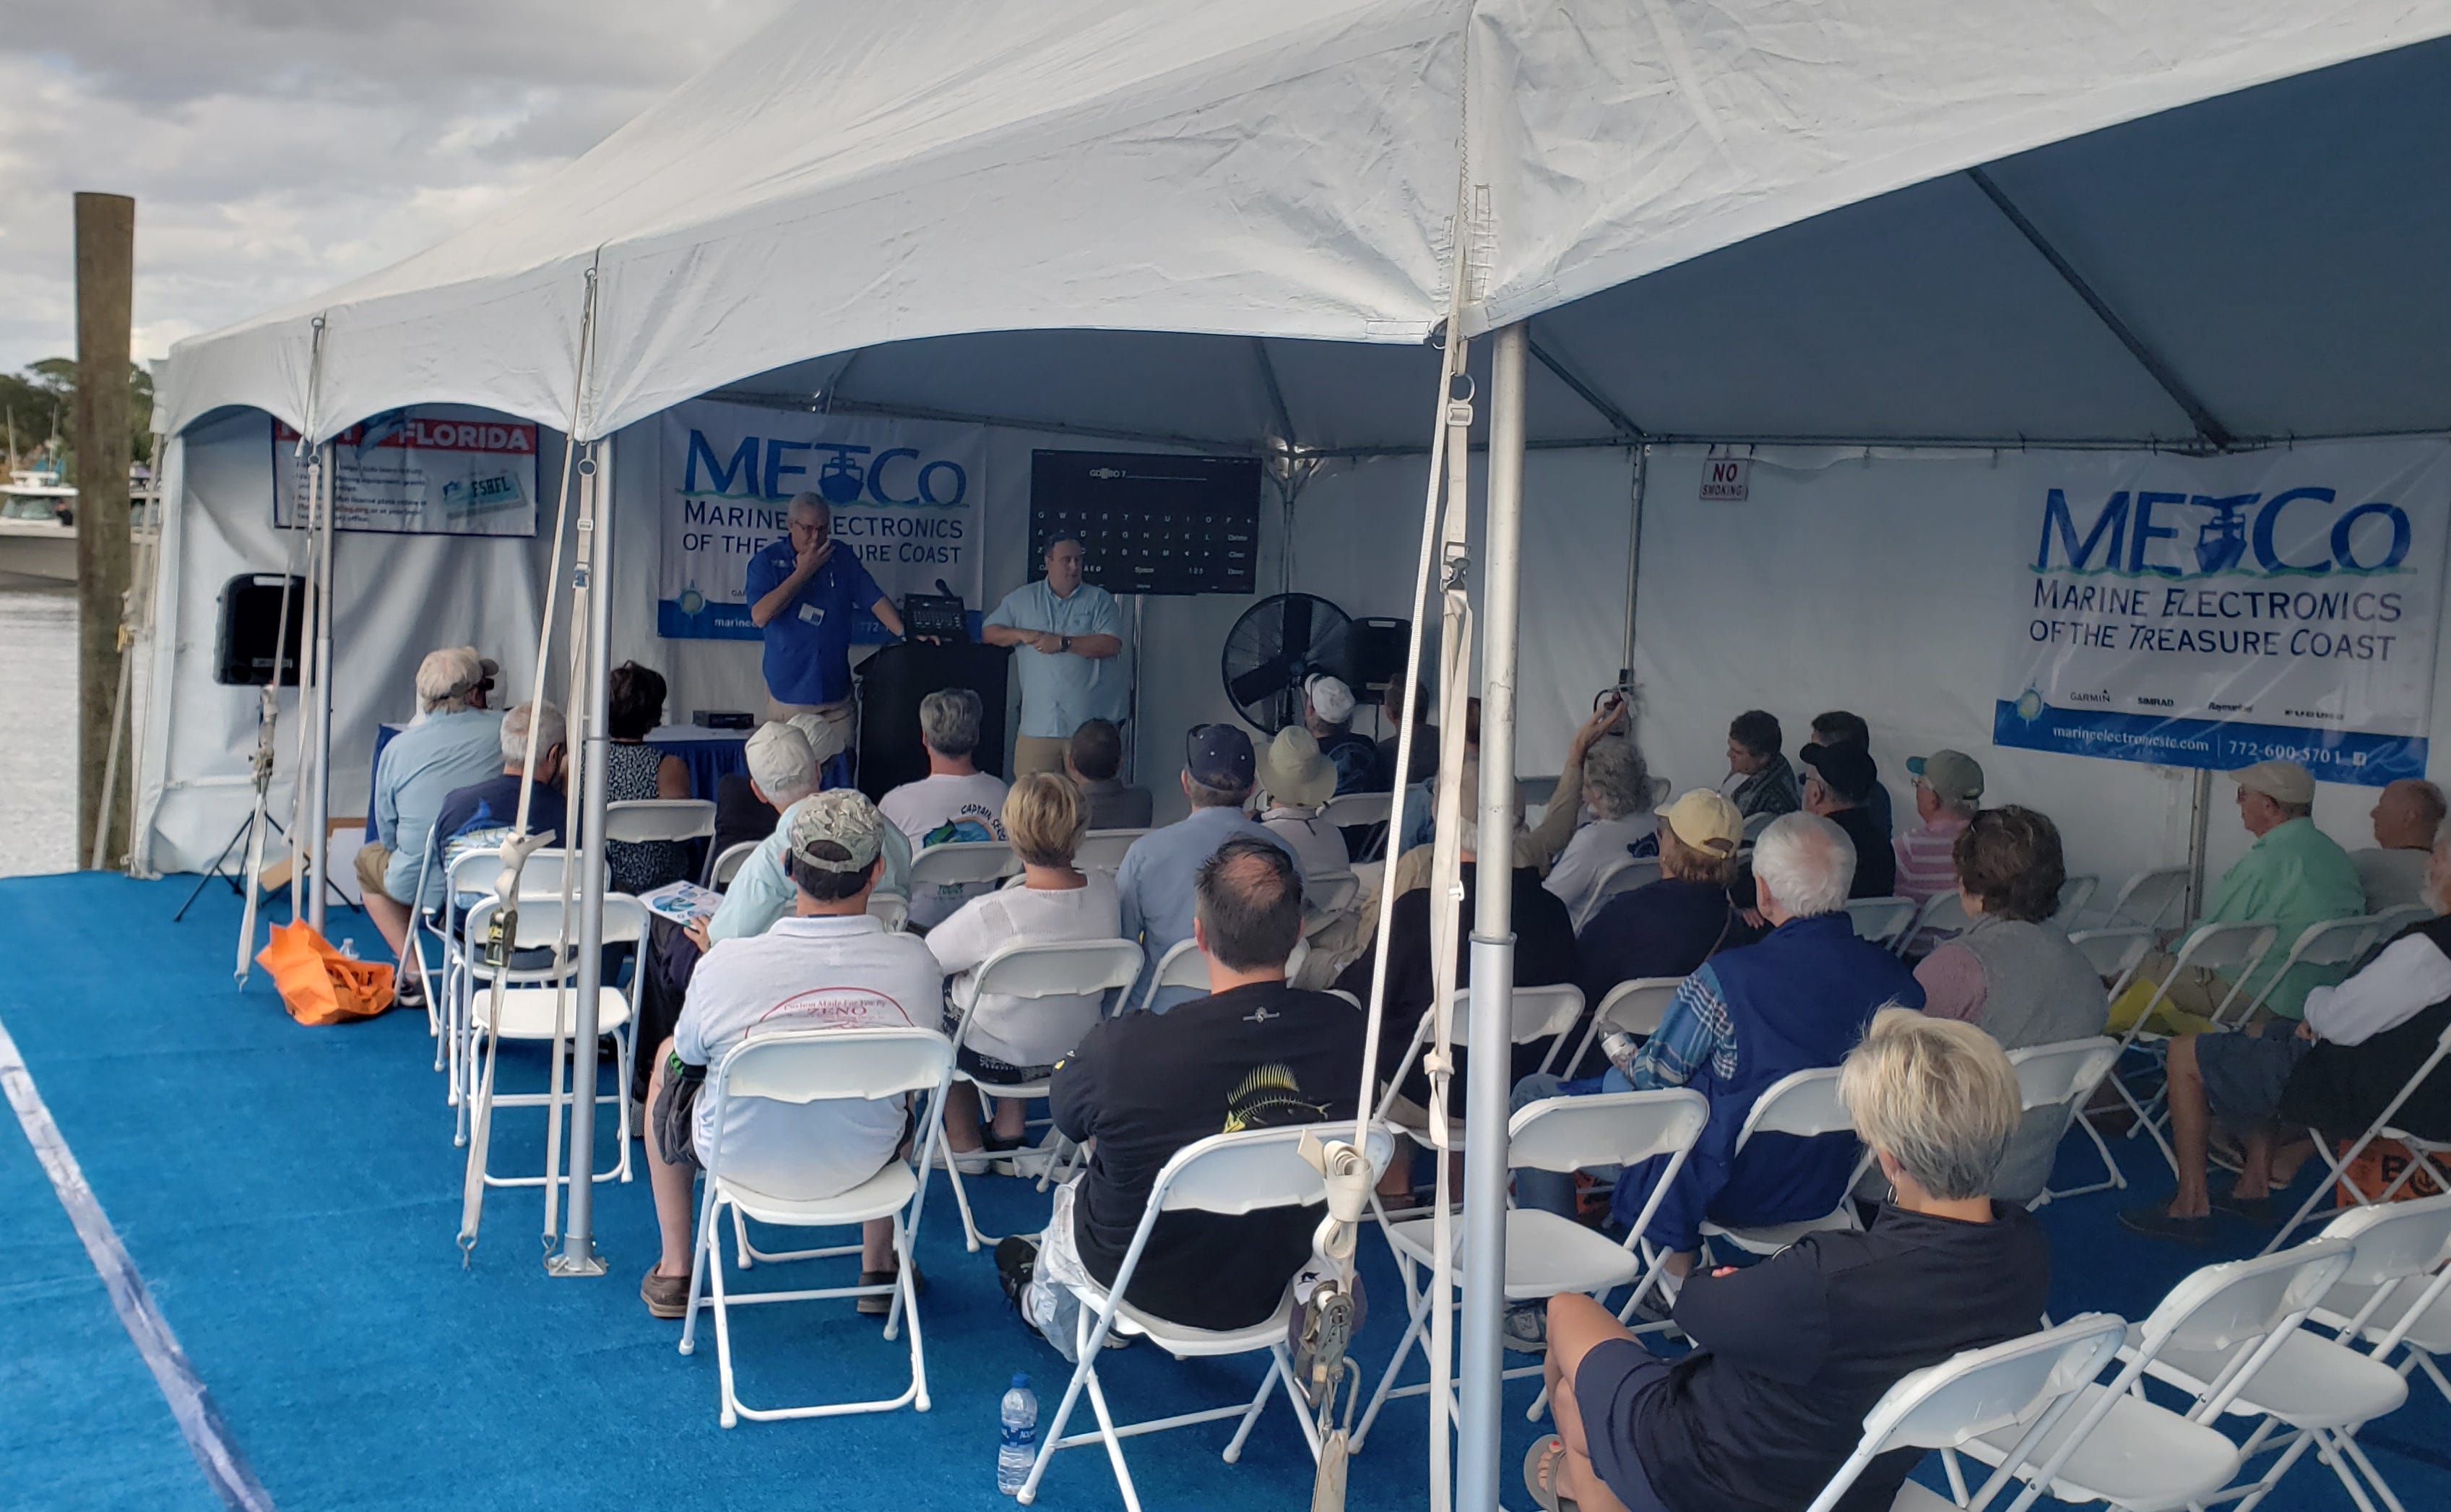 The METCo seminar tent at the Stuart Boat Show will be at a